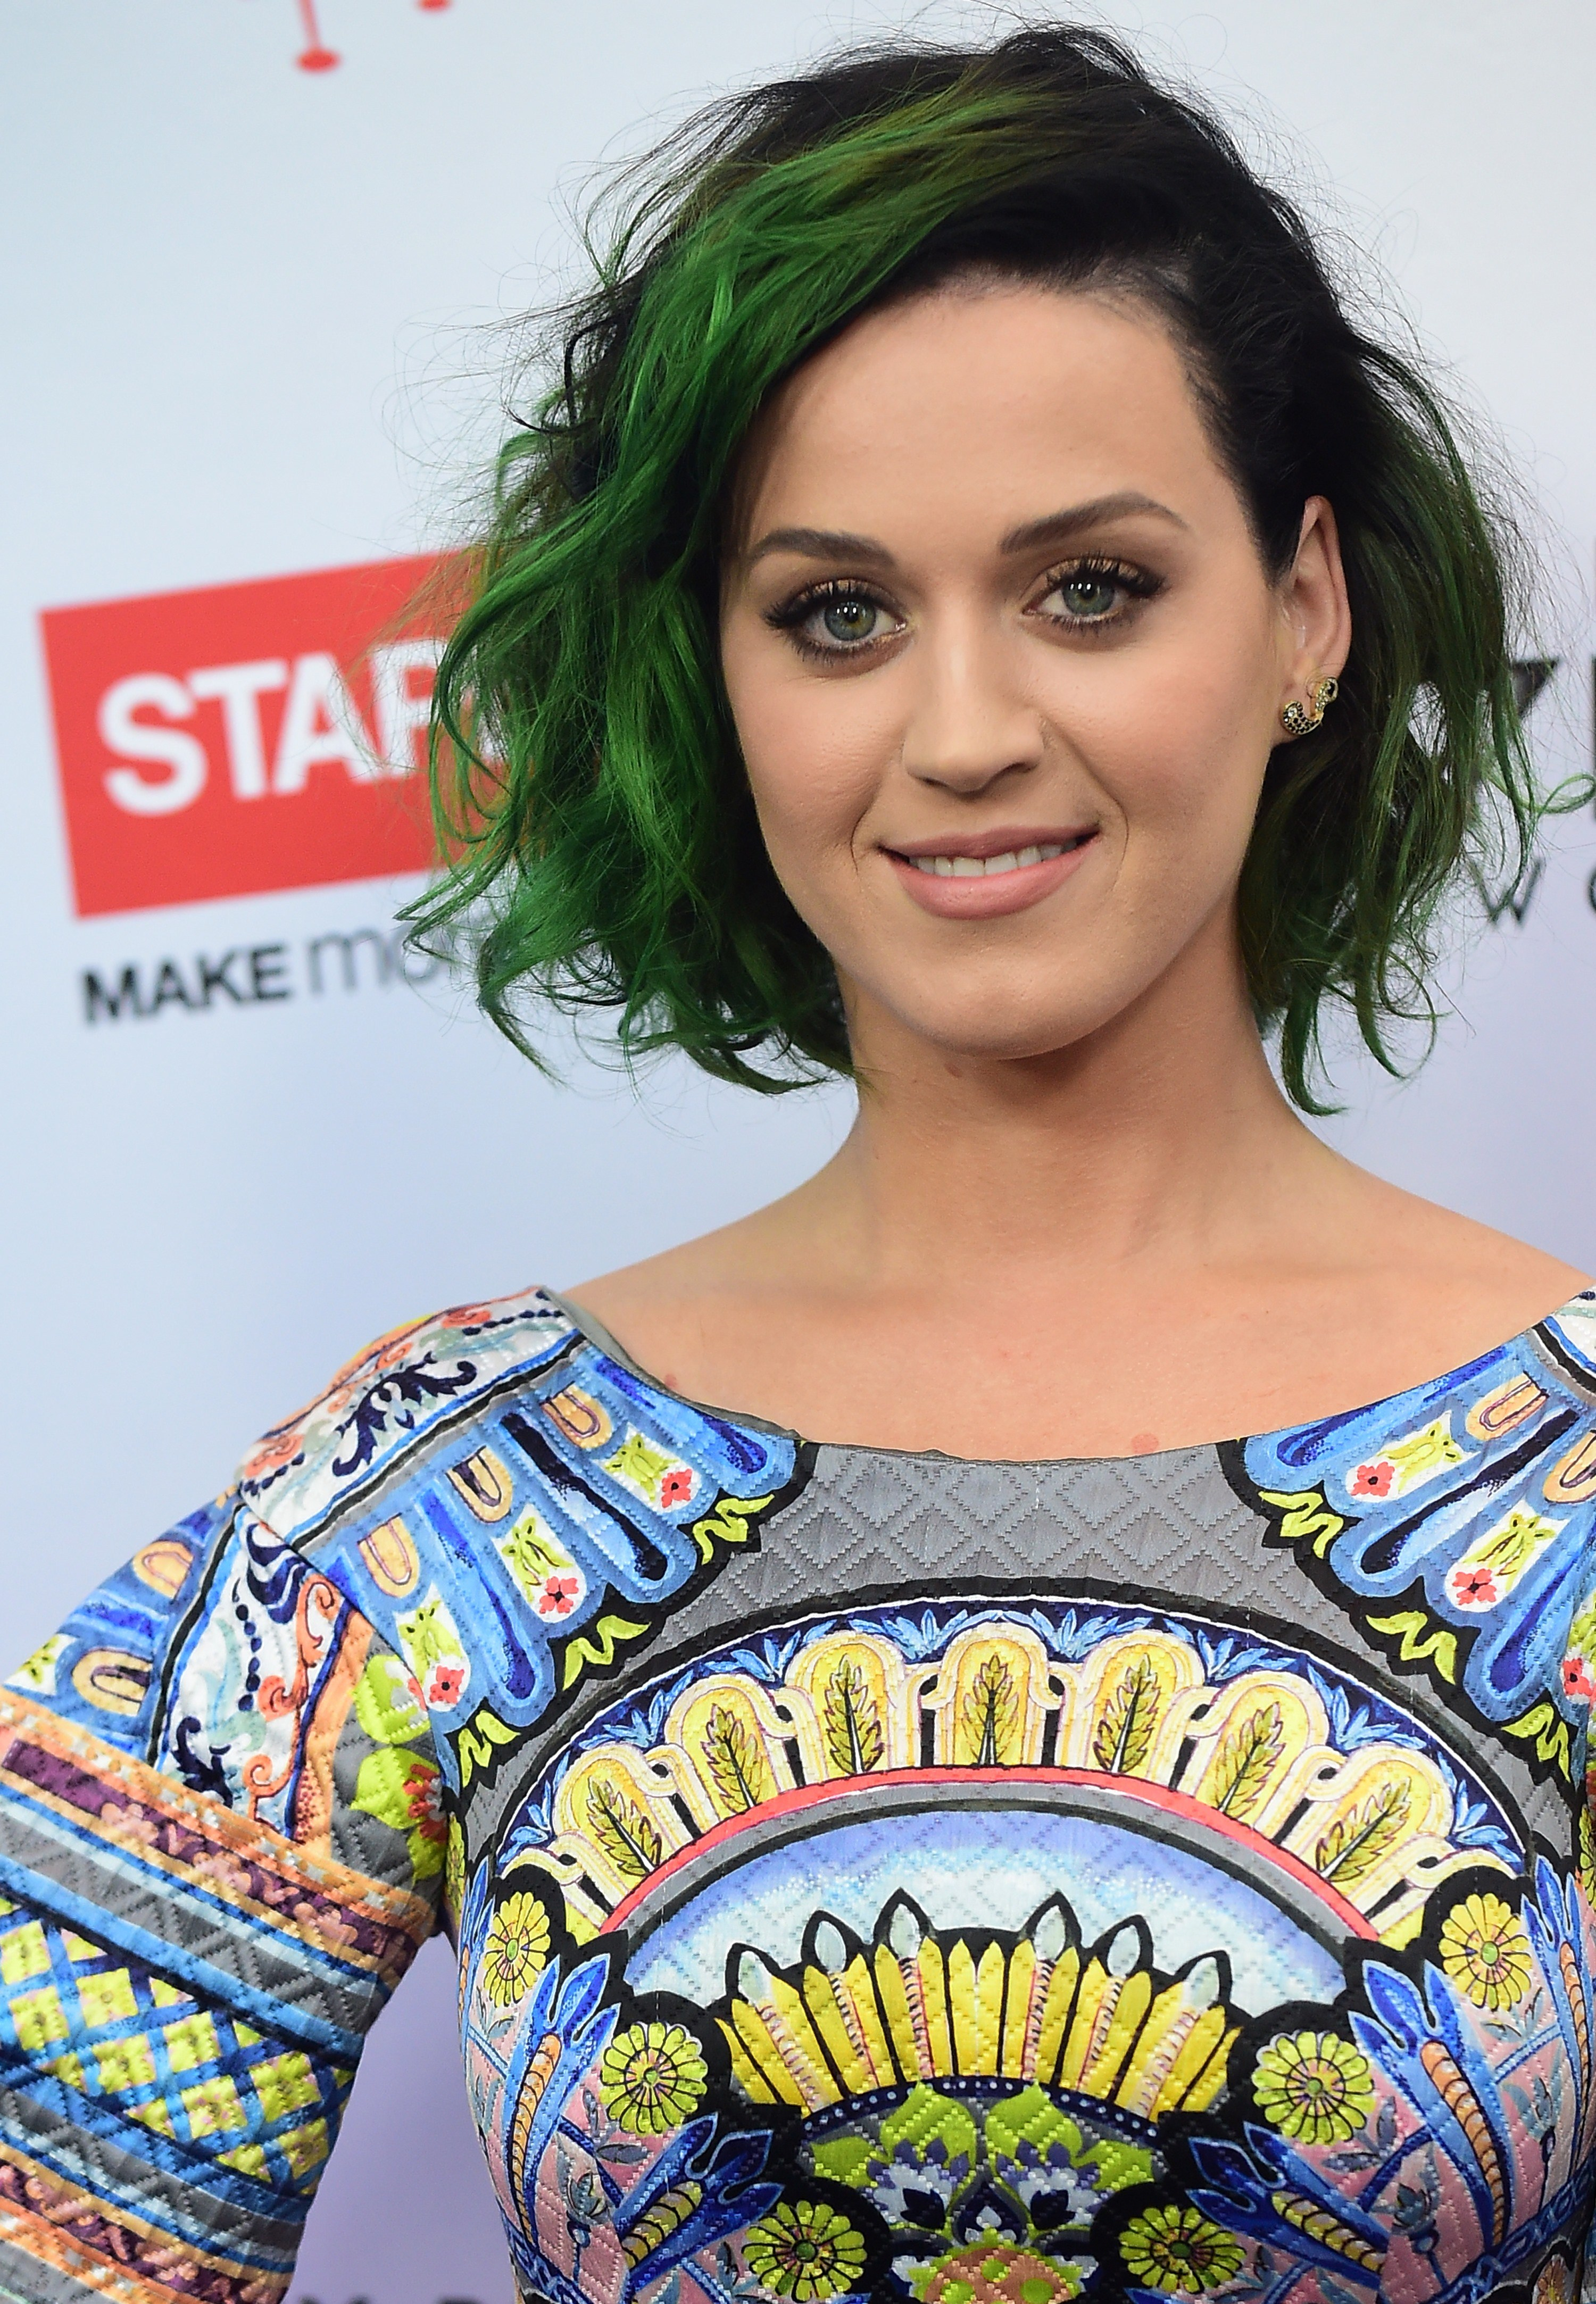 Katy Perry Loved Her Green Hair The Most Plus 5 Other Celebs Who